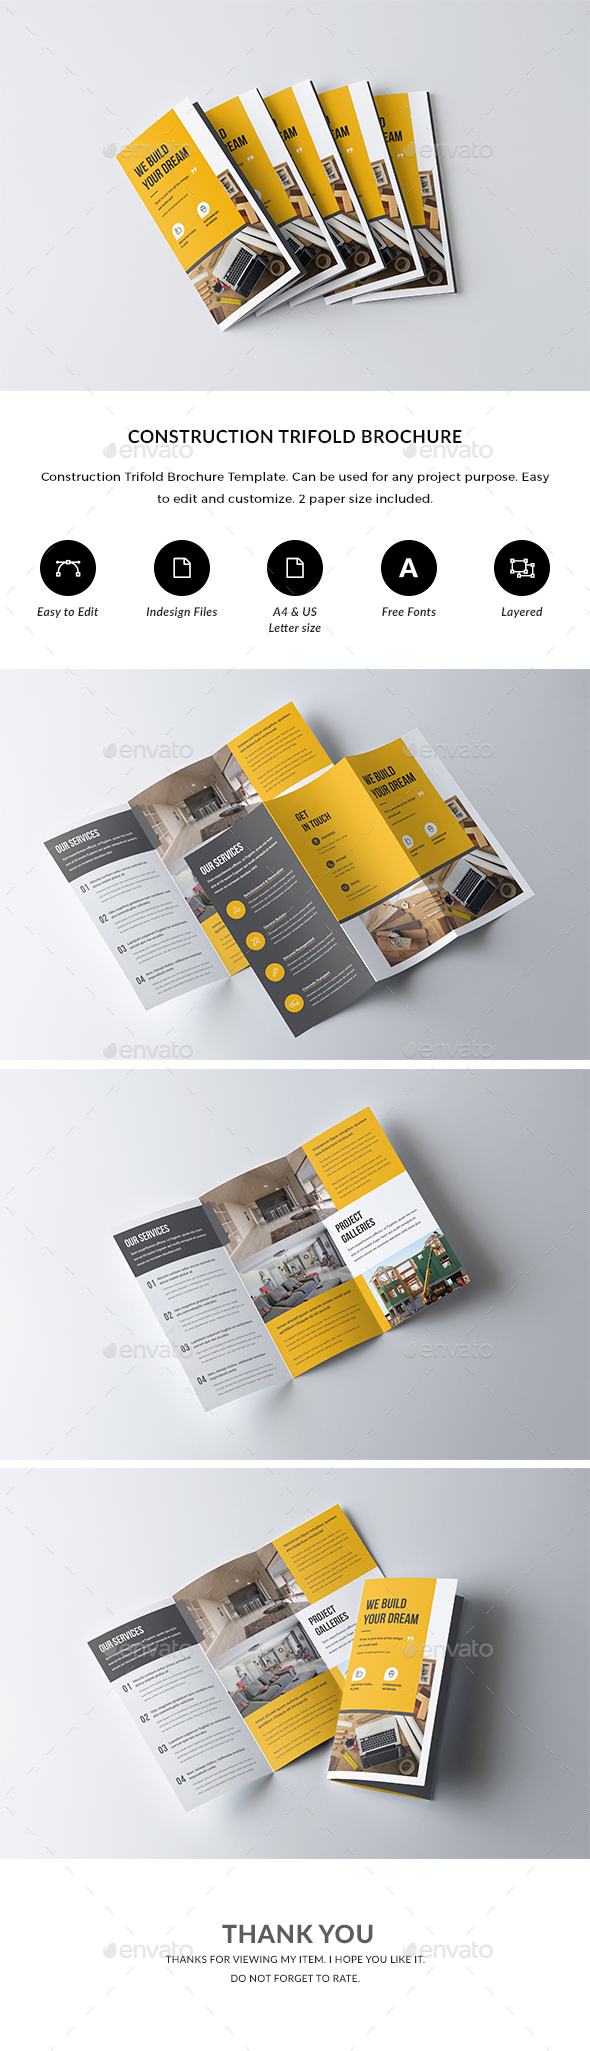 Construction Trifold Brochure - Corporate Brochures